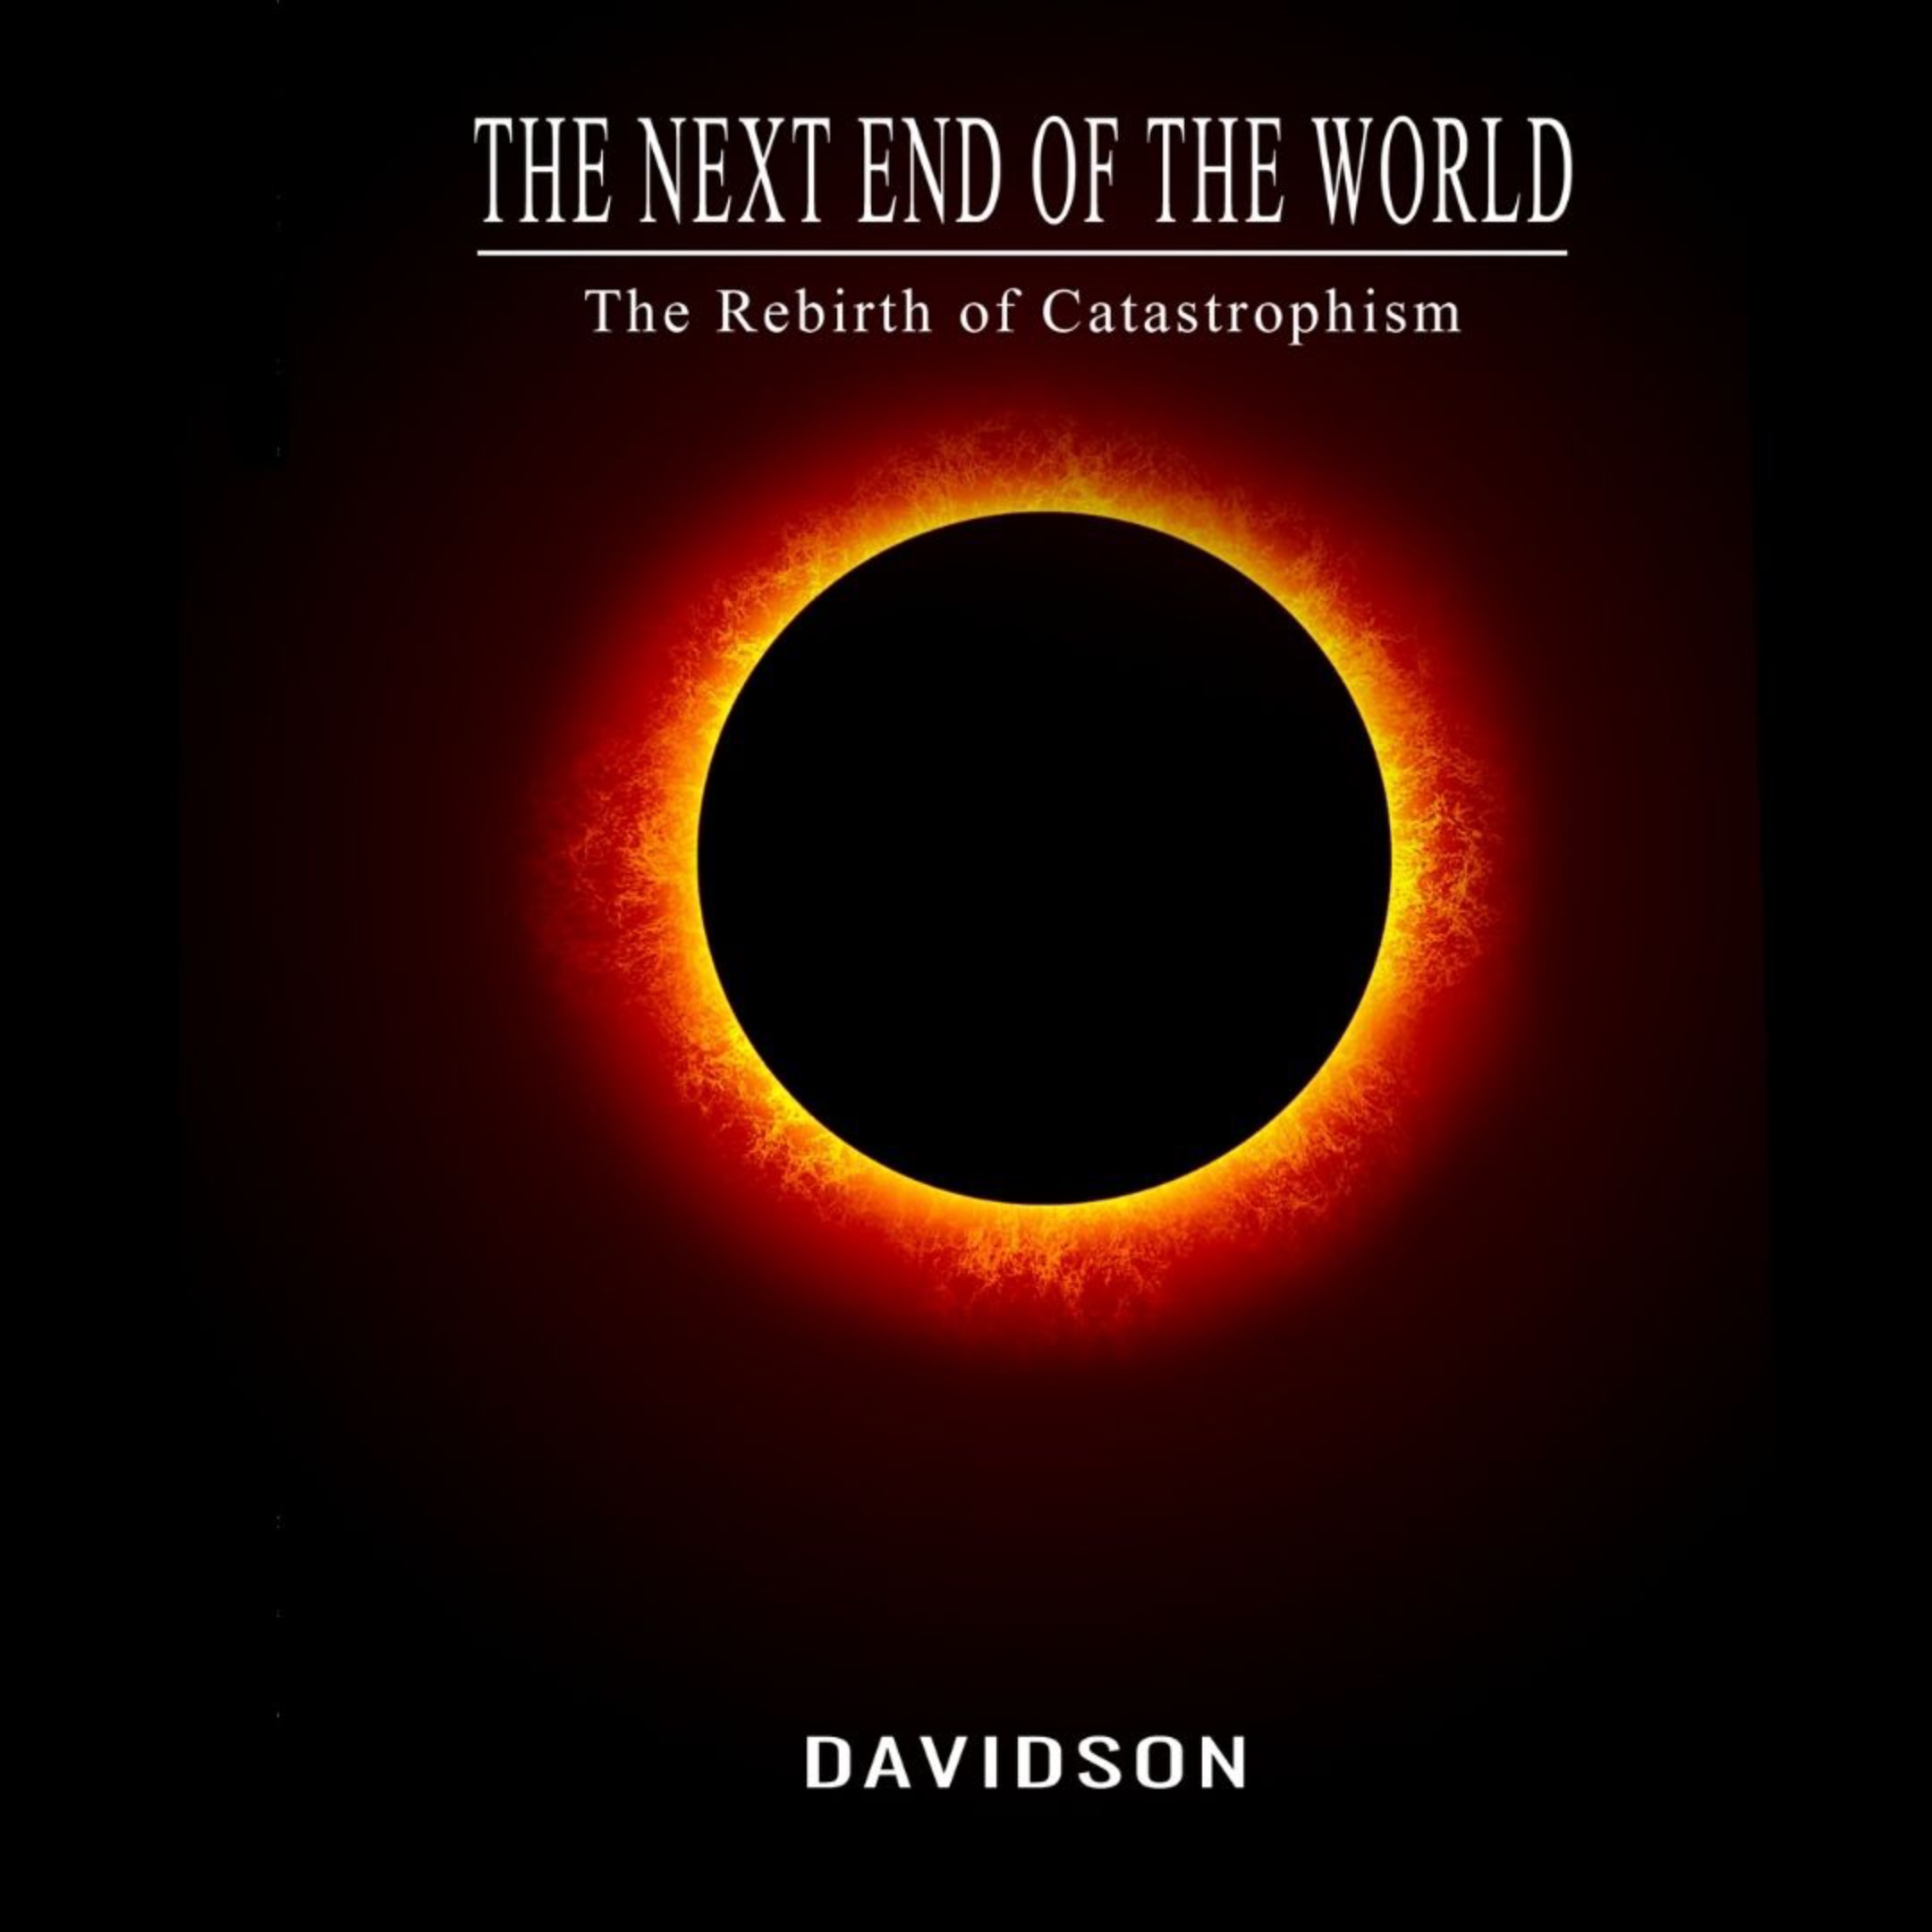 The Next End of the World: The Rebirth of Catastrophism